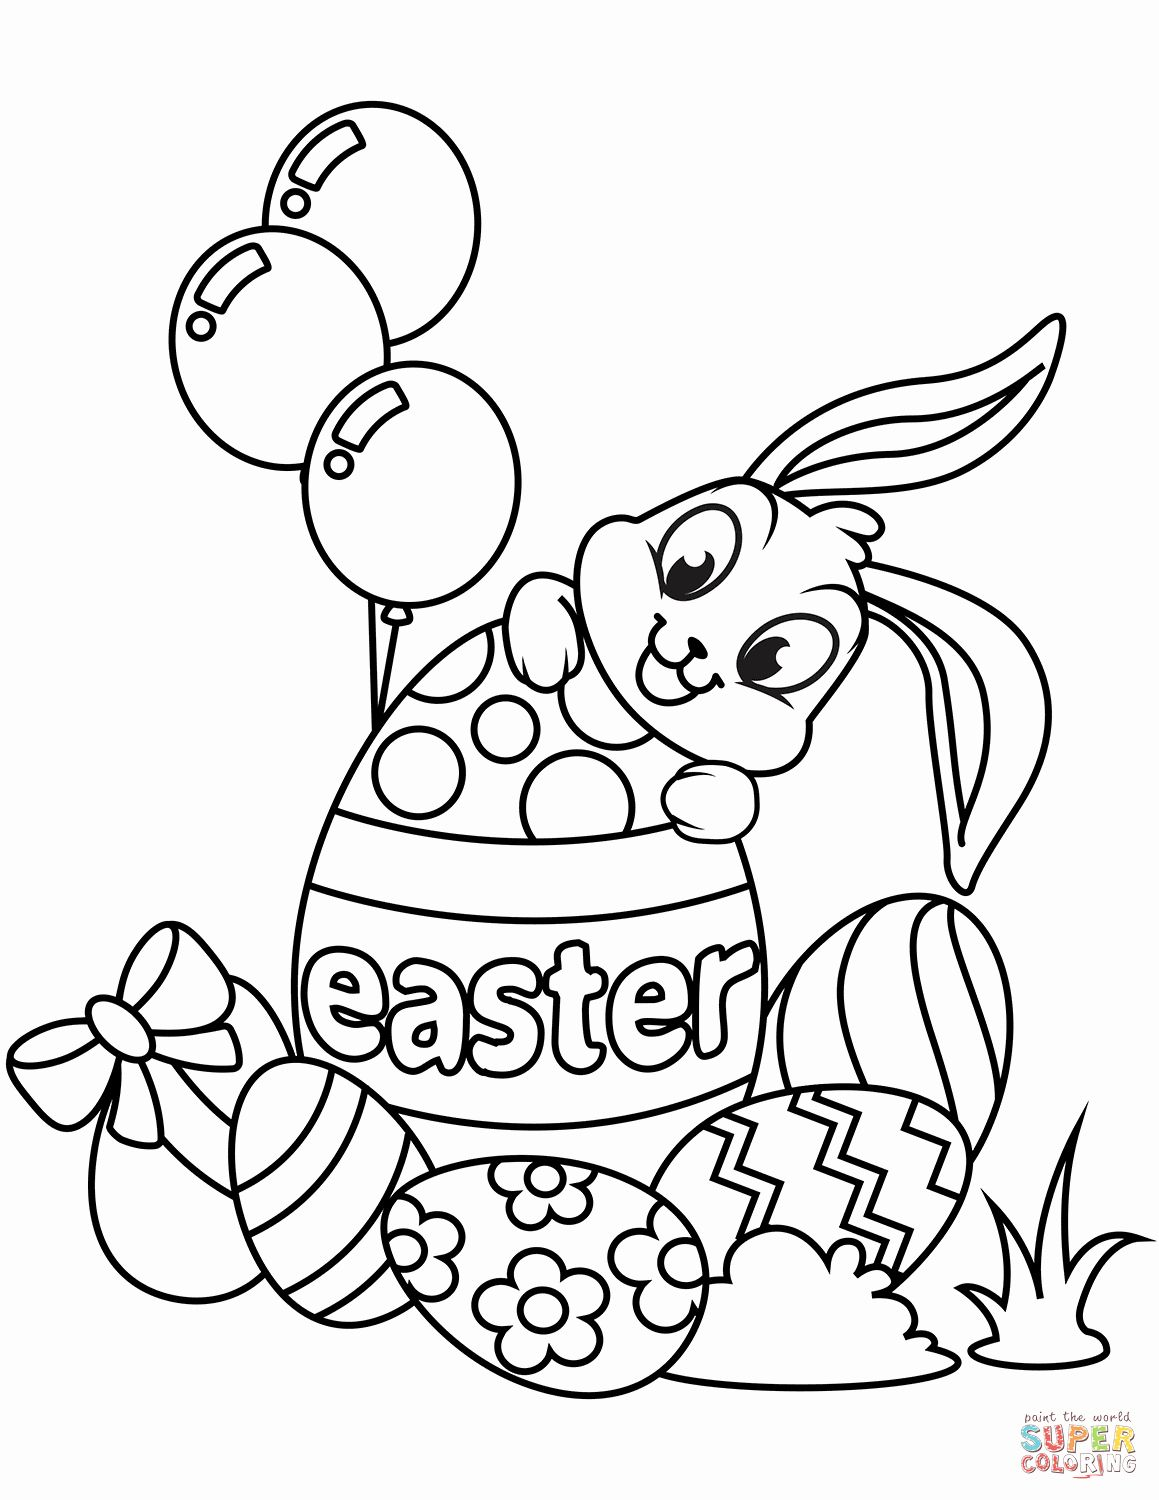 Easter Egg Coloring Pages Printable New Coloring Book World Easter Coloring Pages For Kids Cra Bunny Coloring Pages Easter Bunny Colouring Easter Coloring Book